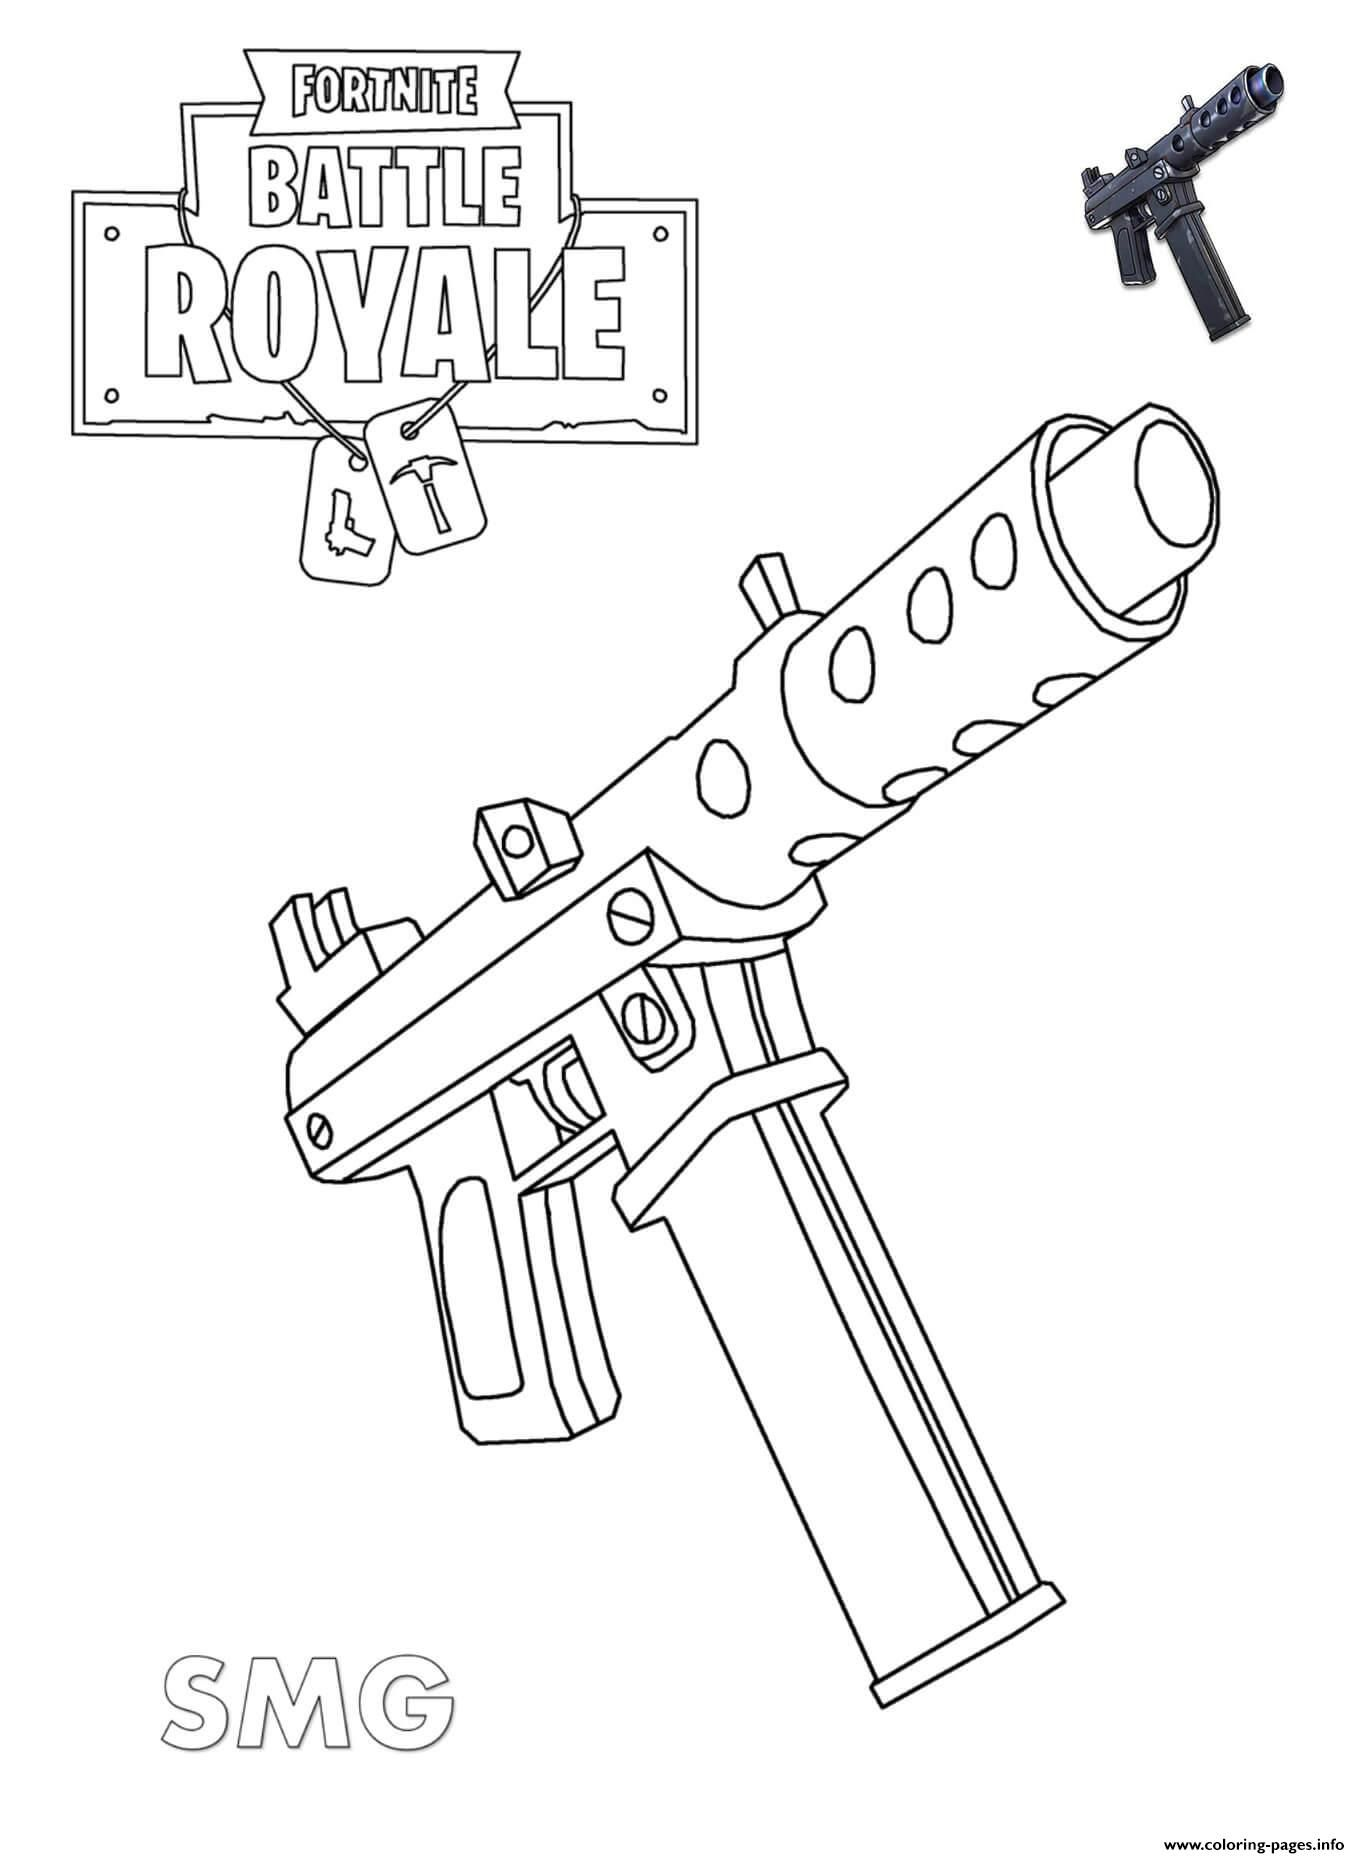 Print Machine Pistol Fortnite Coloring Pages Coloring Books Fox Coloring Page Coloring Pages For Boys